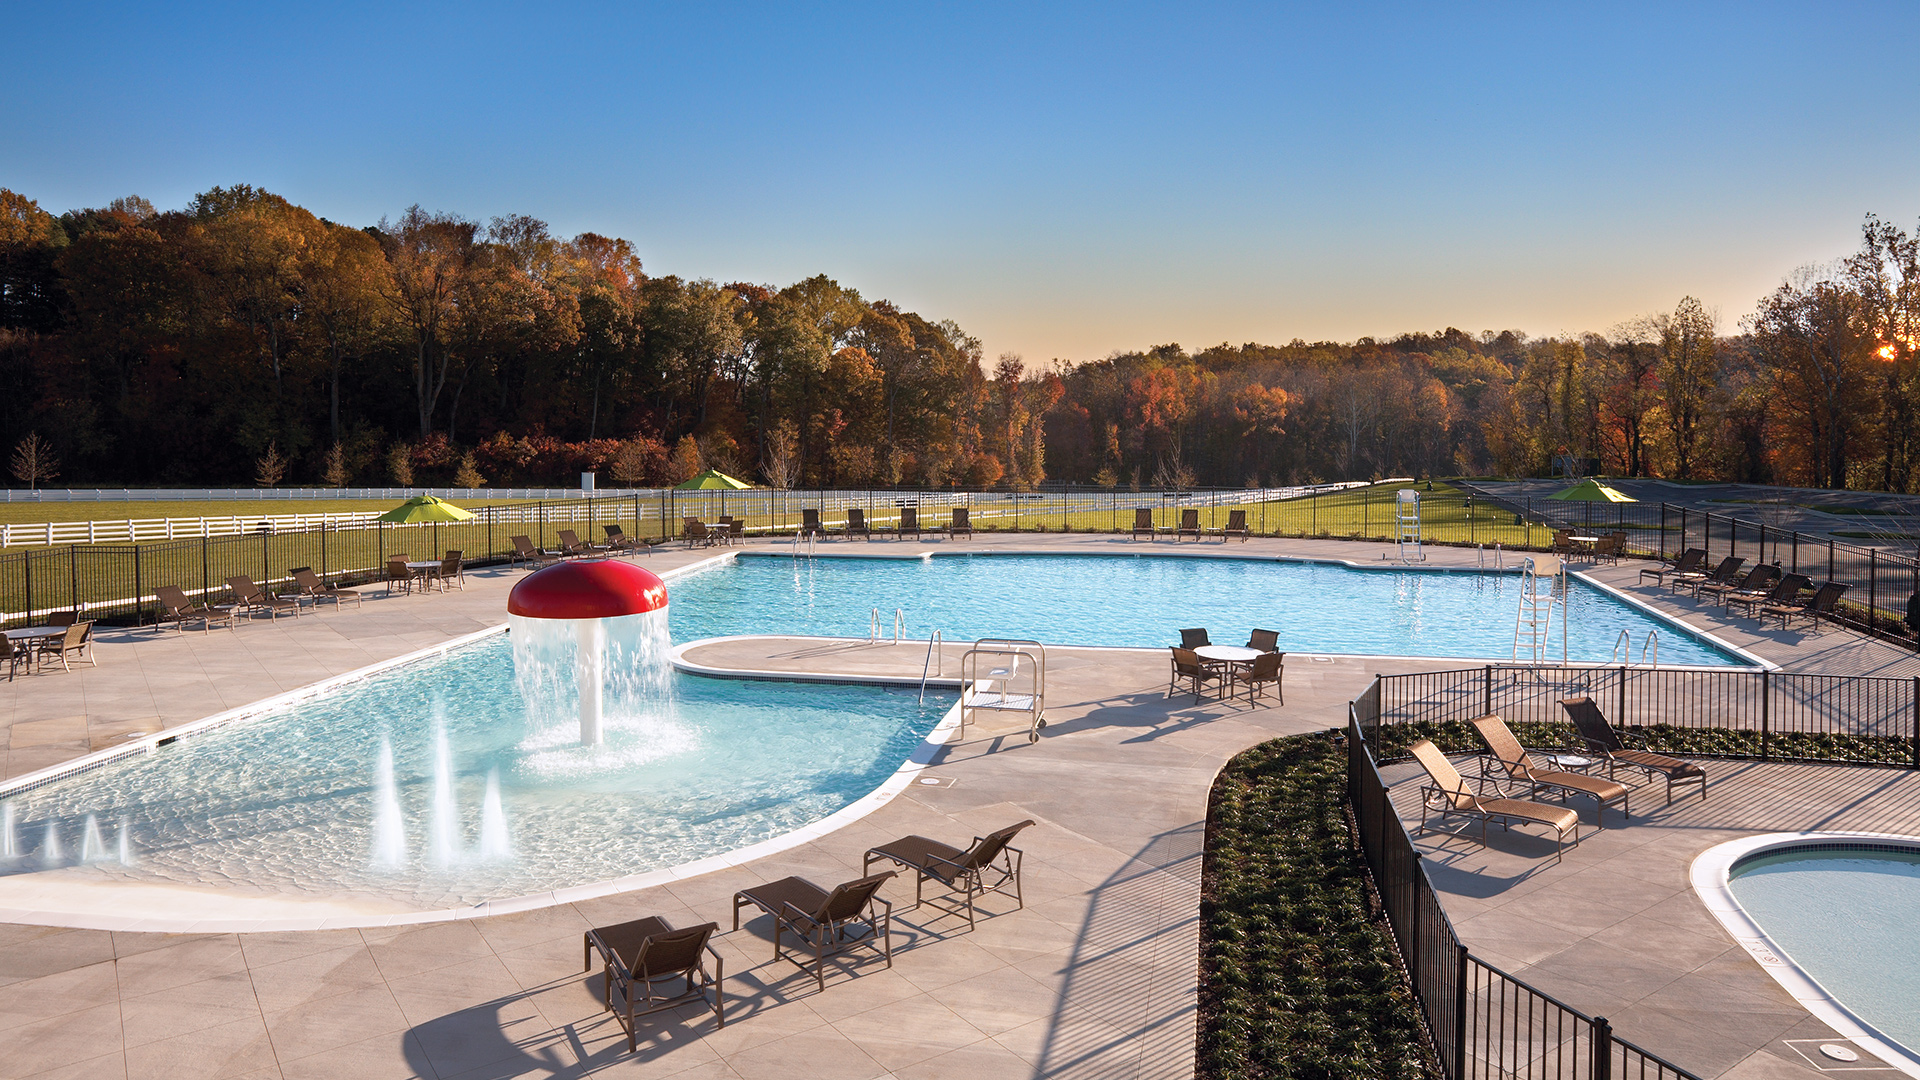 Upper Marlboro Md New Homes For Sale Ridge The Glen How To Build A Horse Barn Hometips Equestrian Center With Indoor Outdoor Riding Rings 22 Stalls Full Time Manager And More